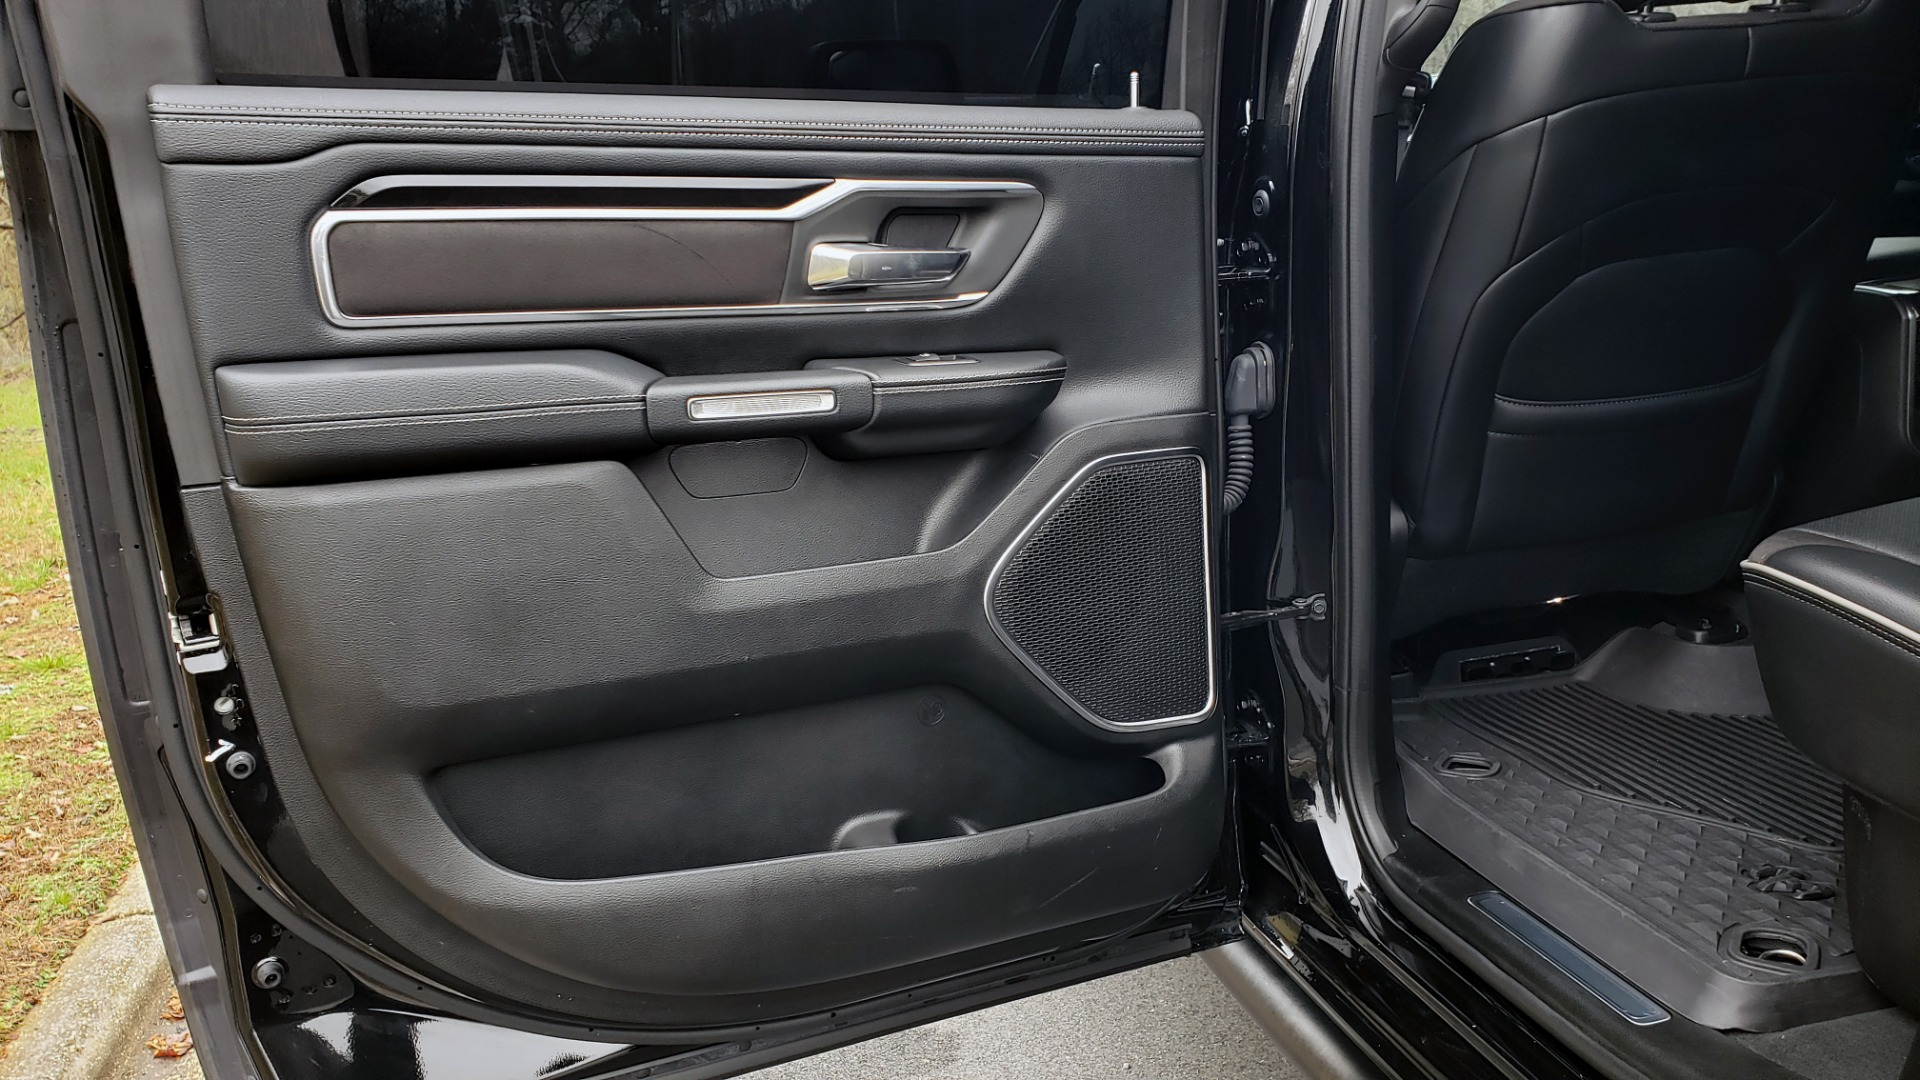 Used 2019 Ram 1500 LARAMIE SPORT / 2WD / 5.7L HEMI / NAV / BLIND SPOT / HTD STS / REARVIEW for sale Sold at Formula Imports in Charlotte NC 28227 71